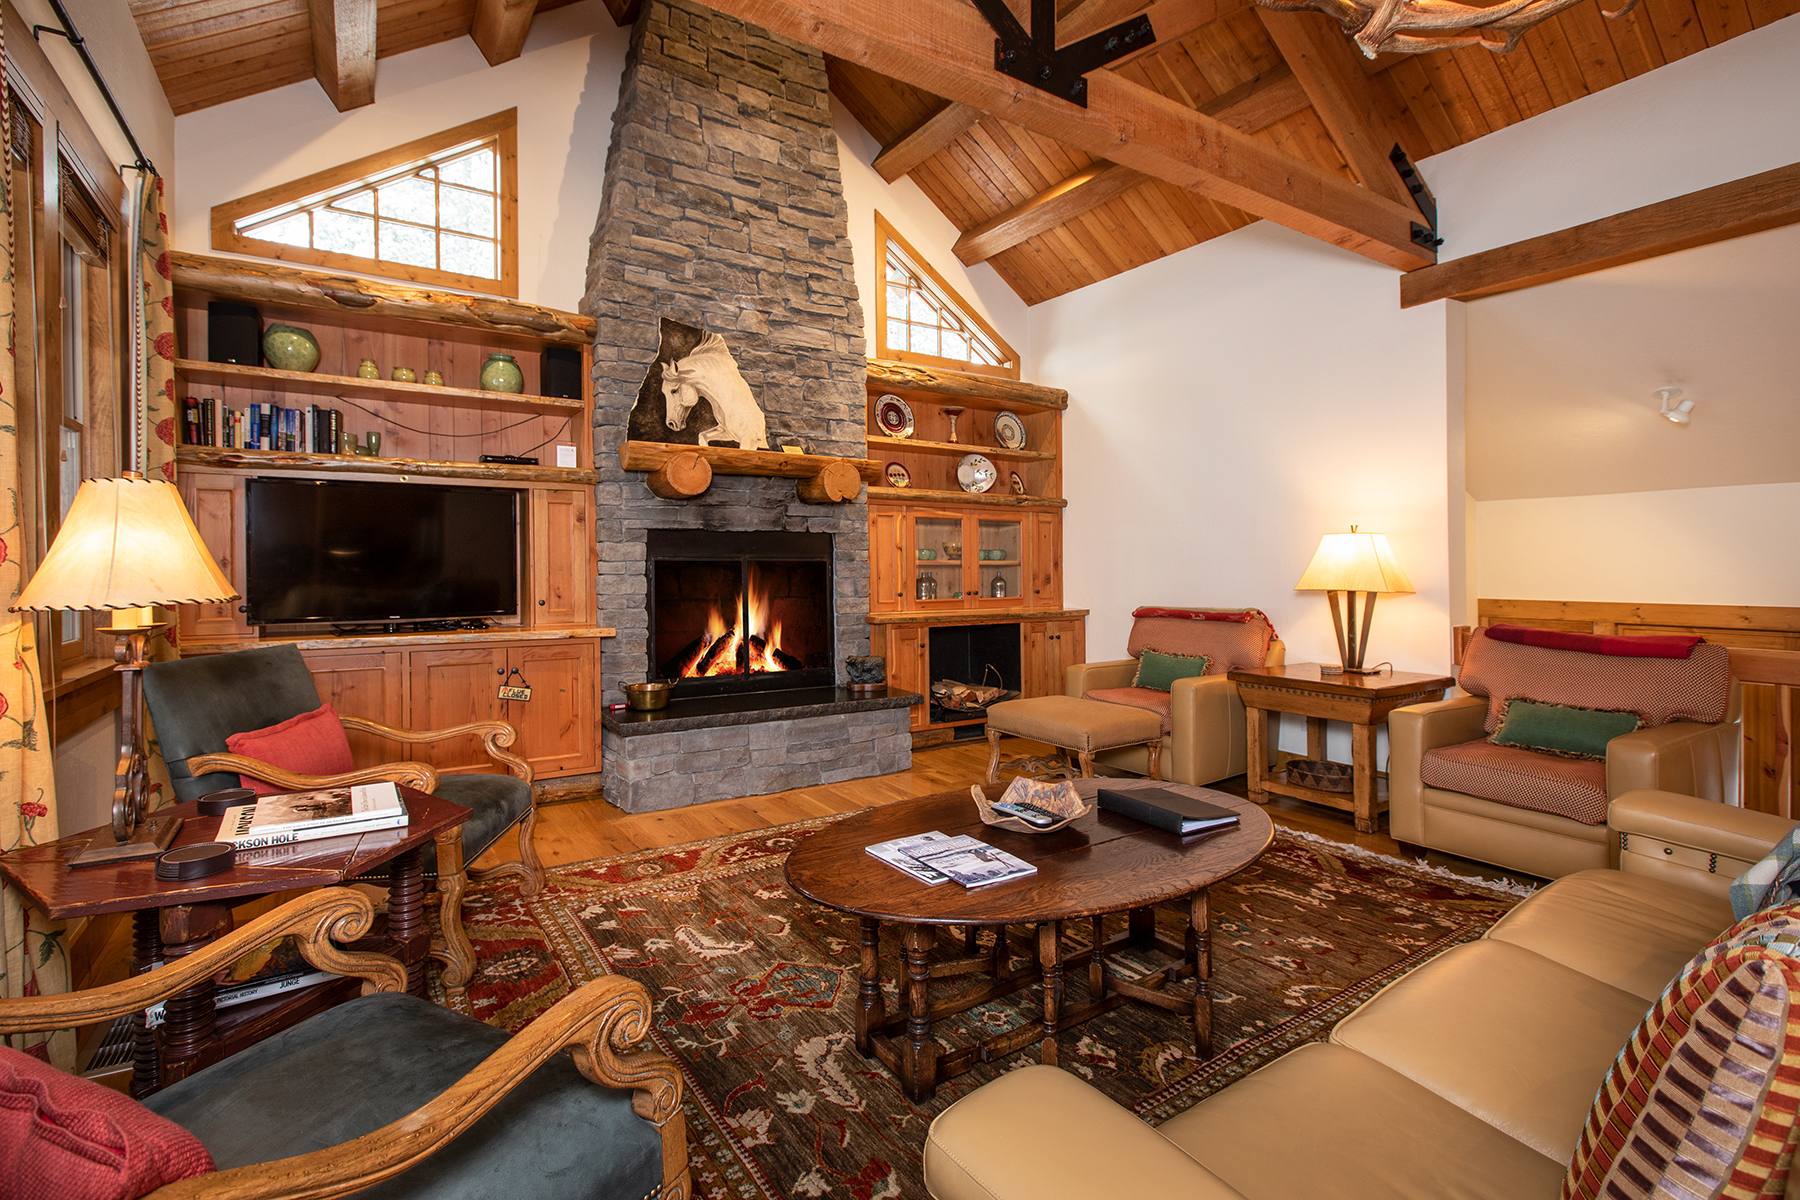 townhouses للـ Sale في Furnished Granite Ridge Homestead Cabin 3070 W ARROWHEAD RD, Teton Village, Wyoming 83025 United States